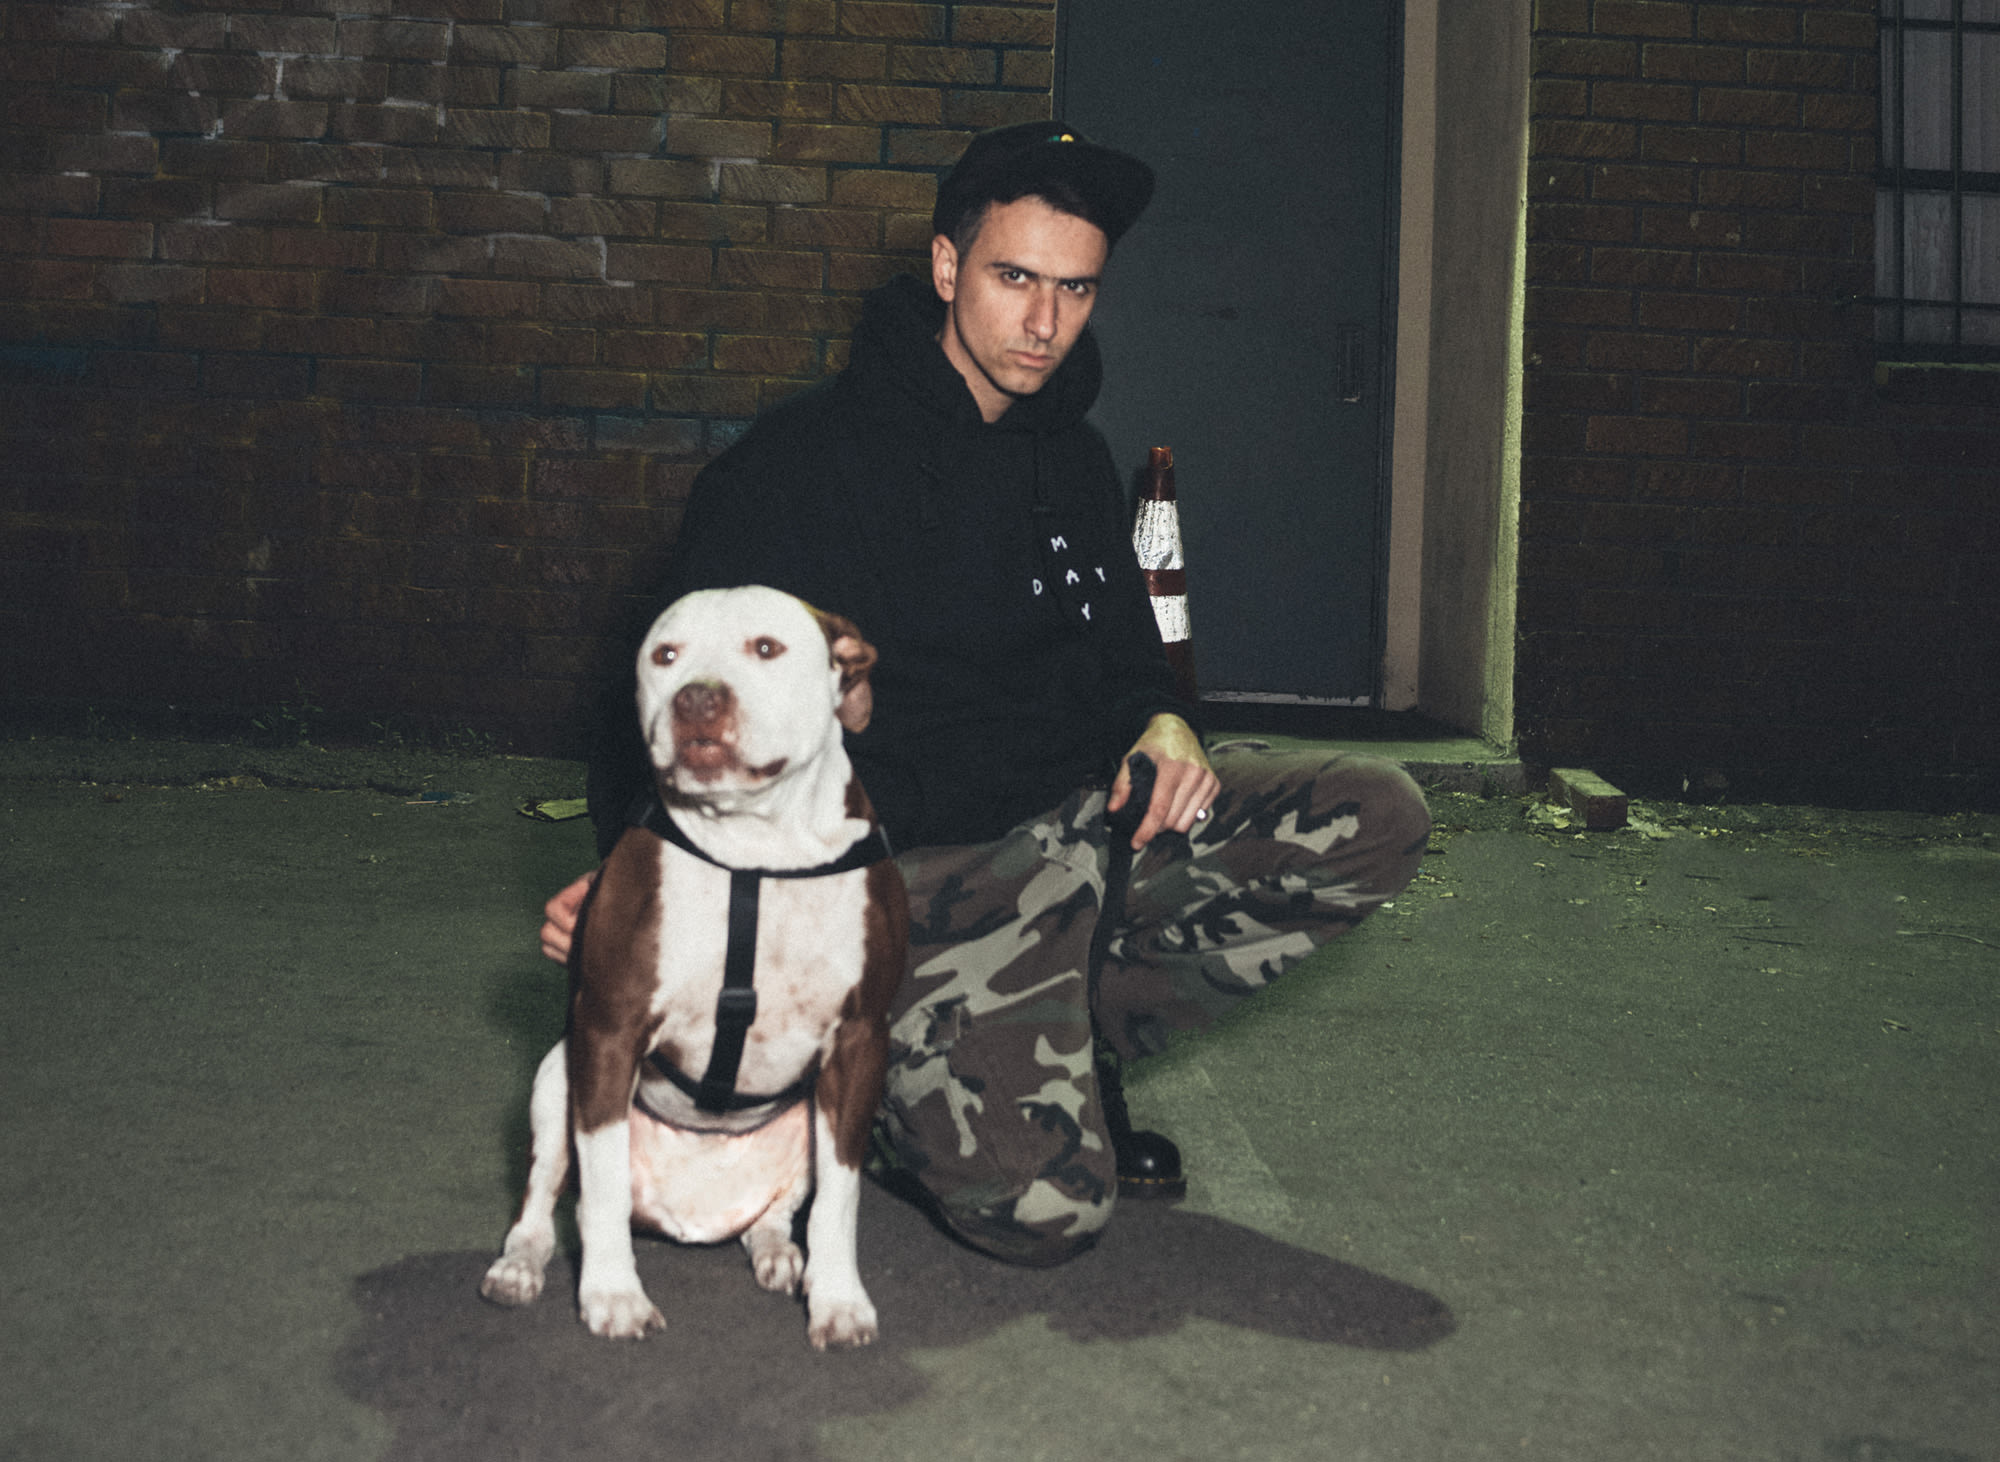 Boys Noize press photo by Shane McCauley